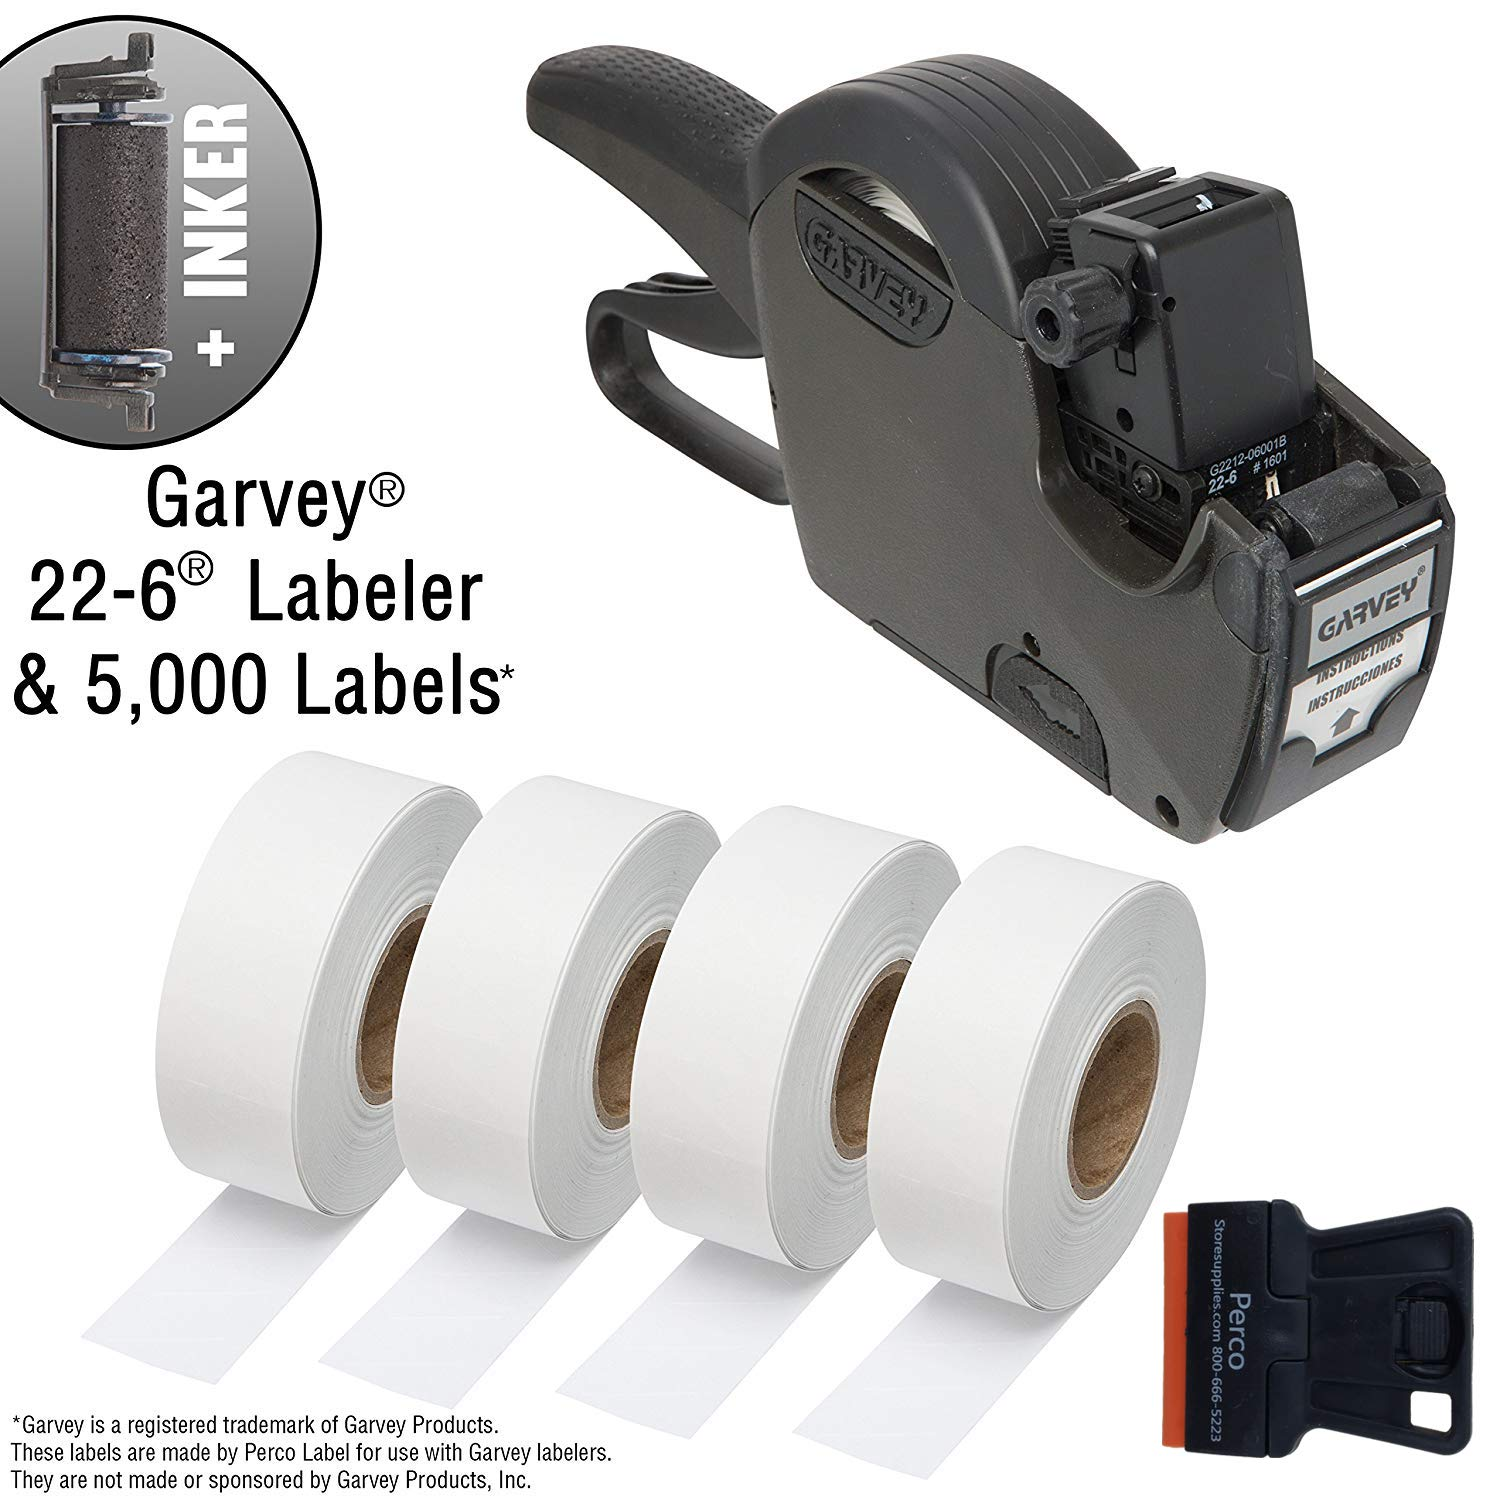 Garvey 22-6 One Line Price Marking Gun Kit: Includes Price Gun, 5,000 White Pricing Labels and Preloaded Inker by Perco (Image #1)